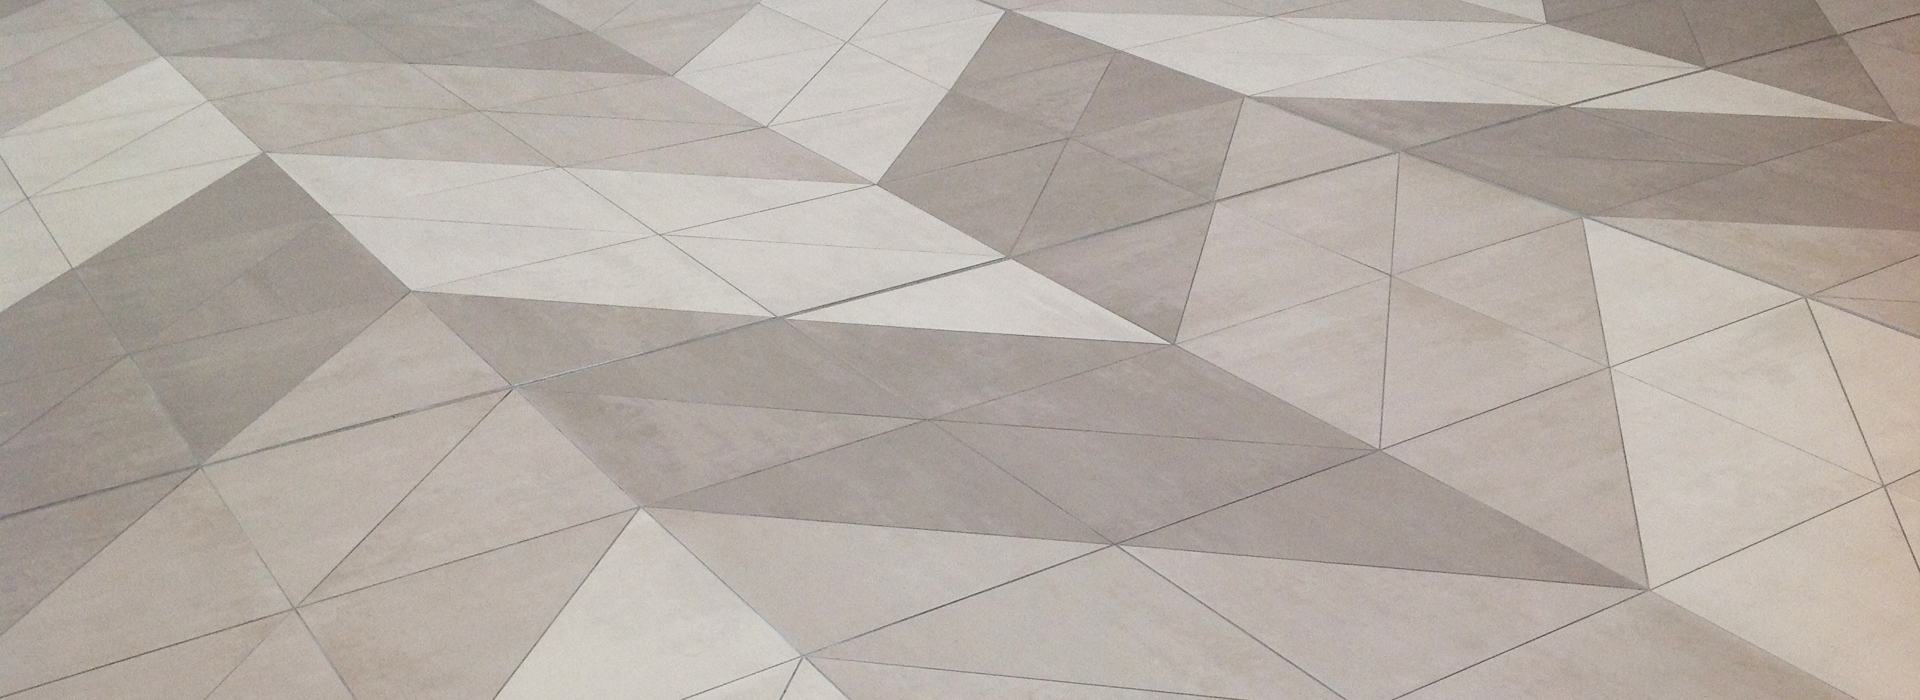 Mosa tiles ceramic tile solutions for architectural designs for Floor tiles images